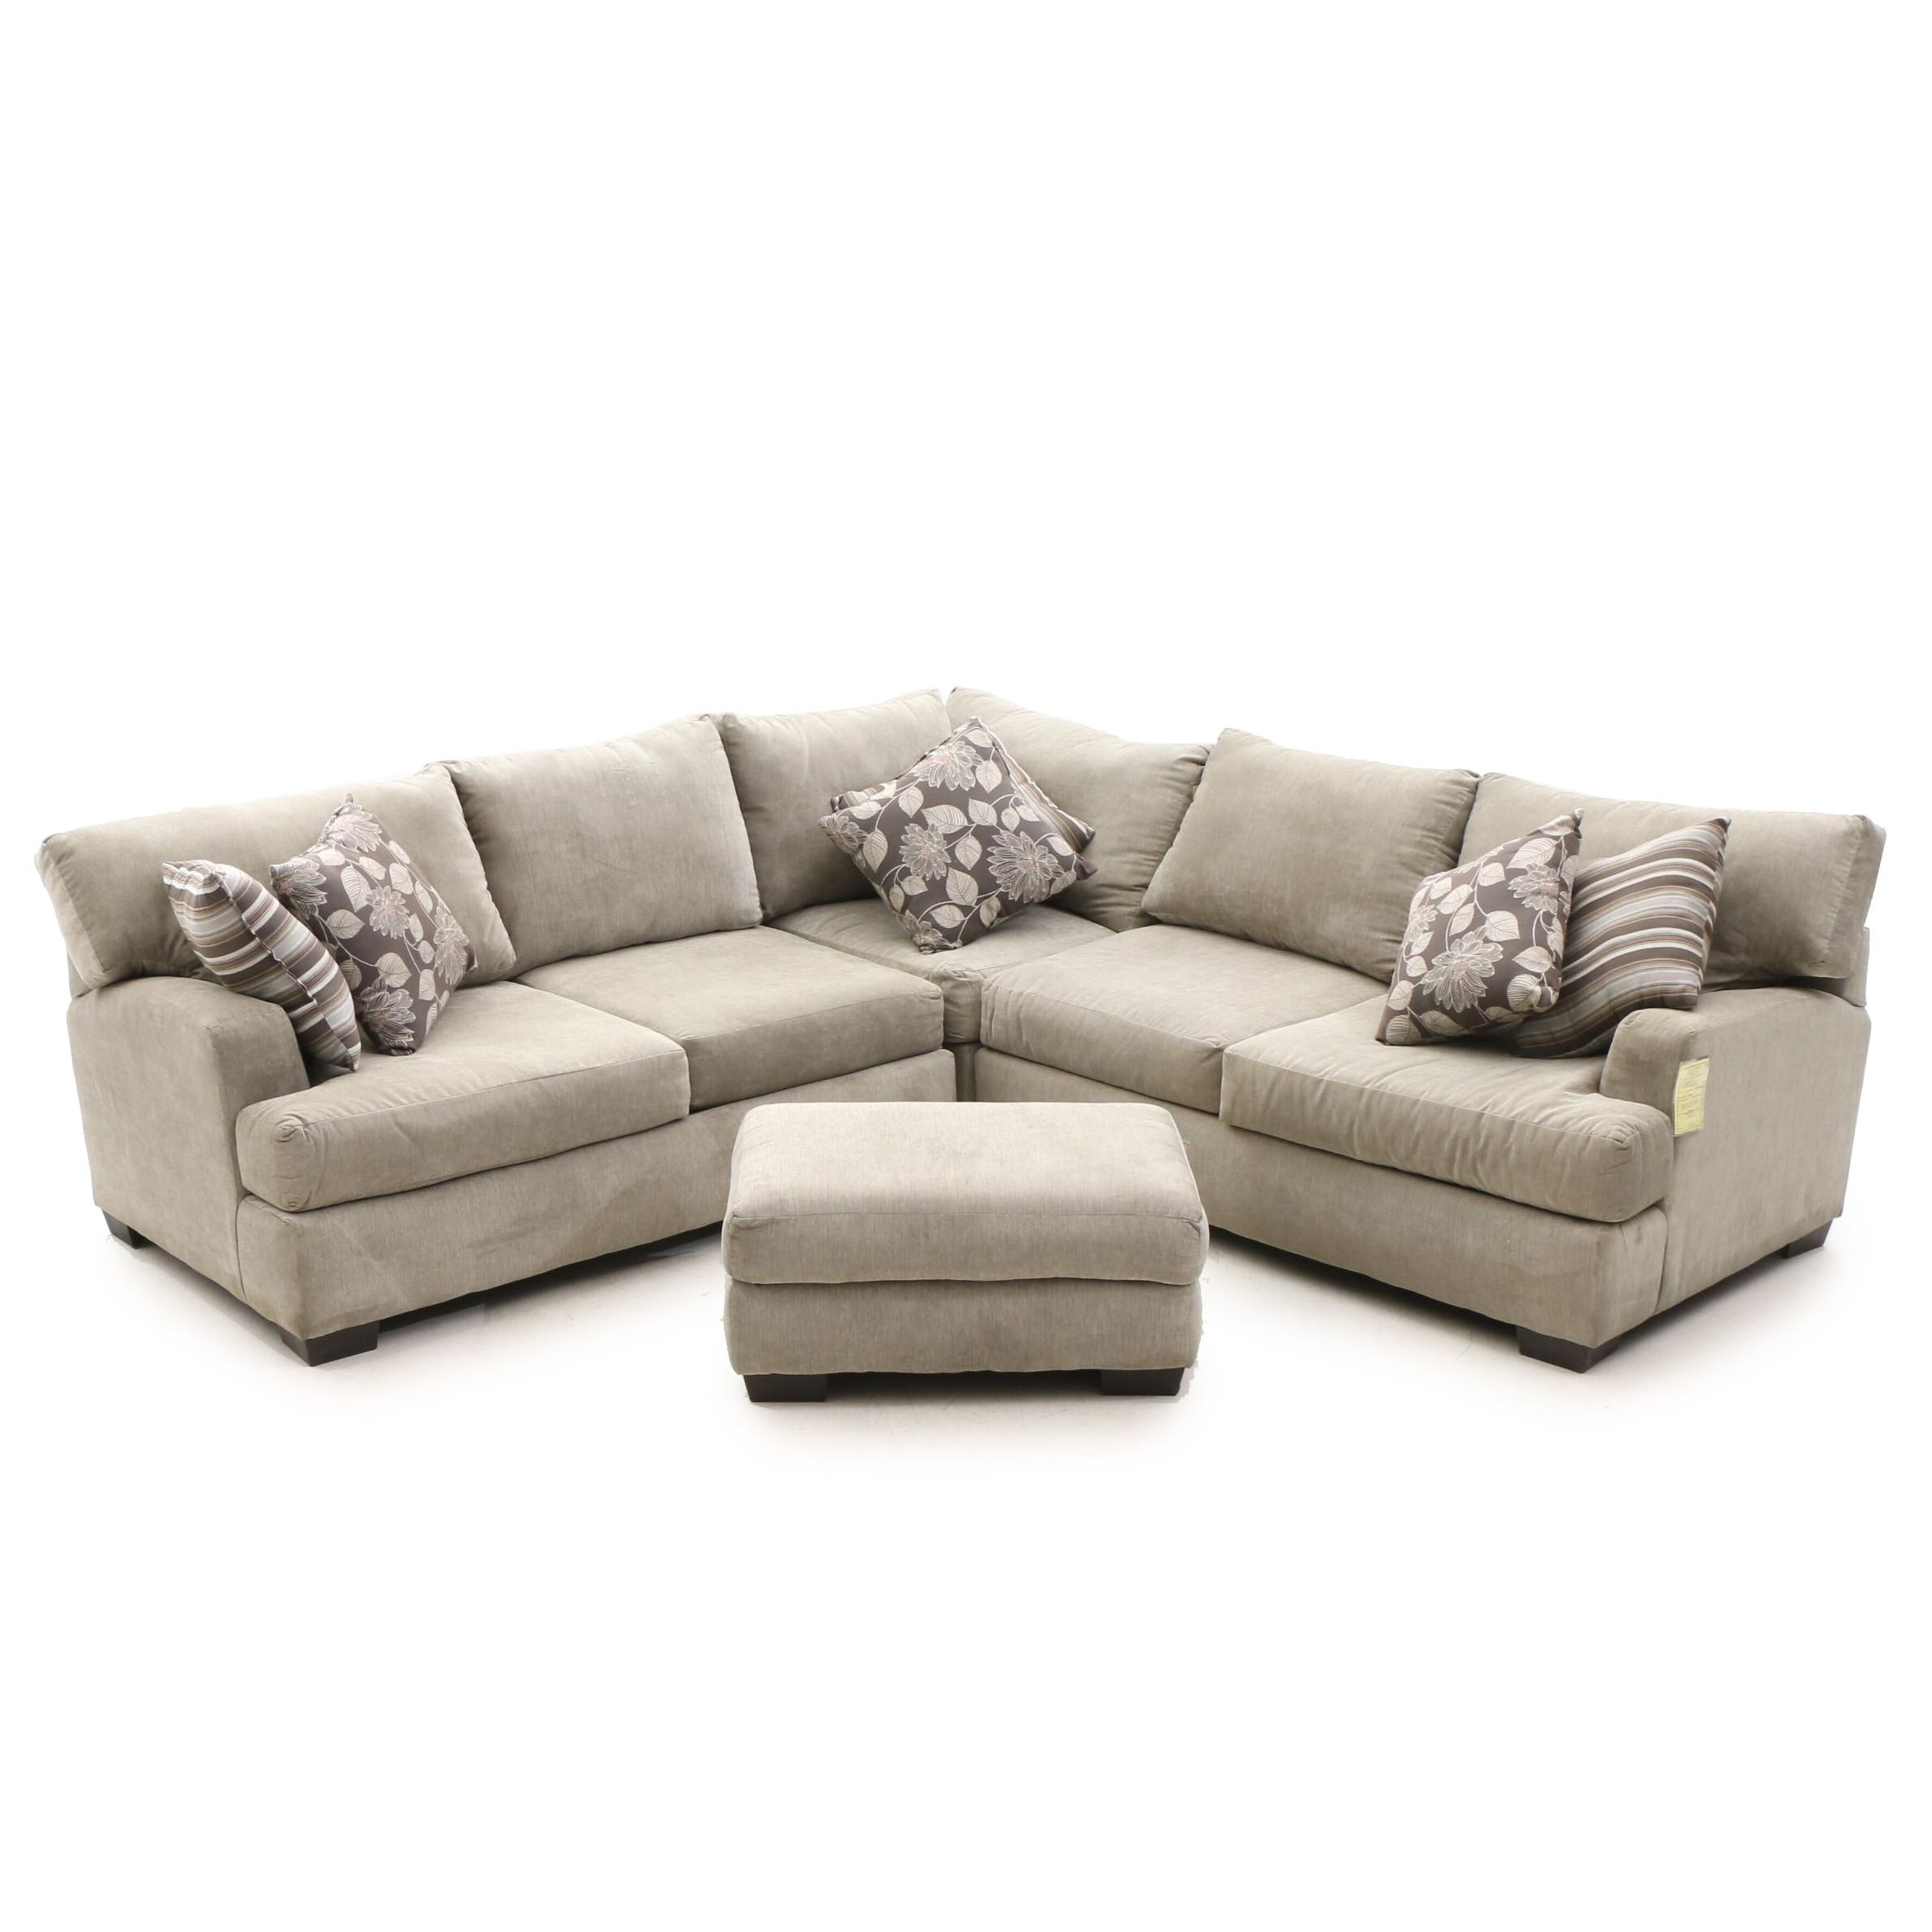 Contemporary 3-Piece Sectional Sofa by Furniture Fair